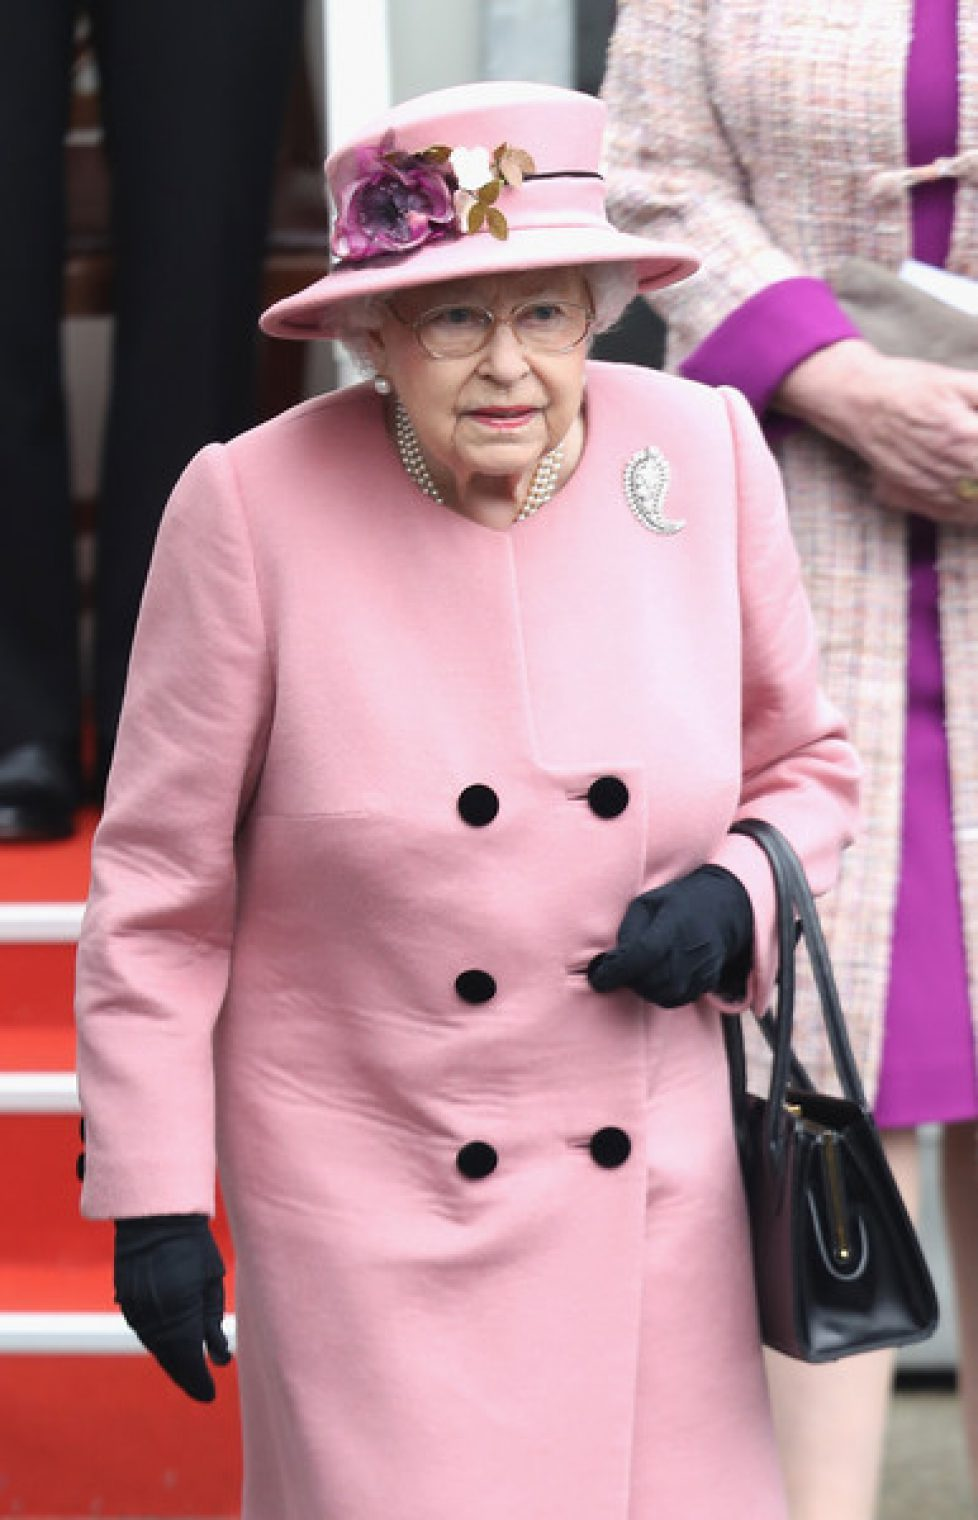 Queen+Elizabeth+II+Attends+Decommissioning+qEuSM4iF0VUl